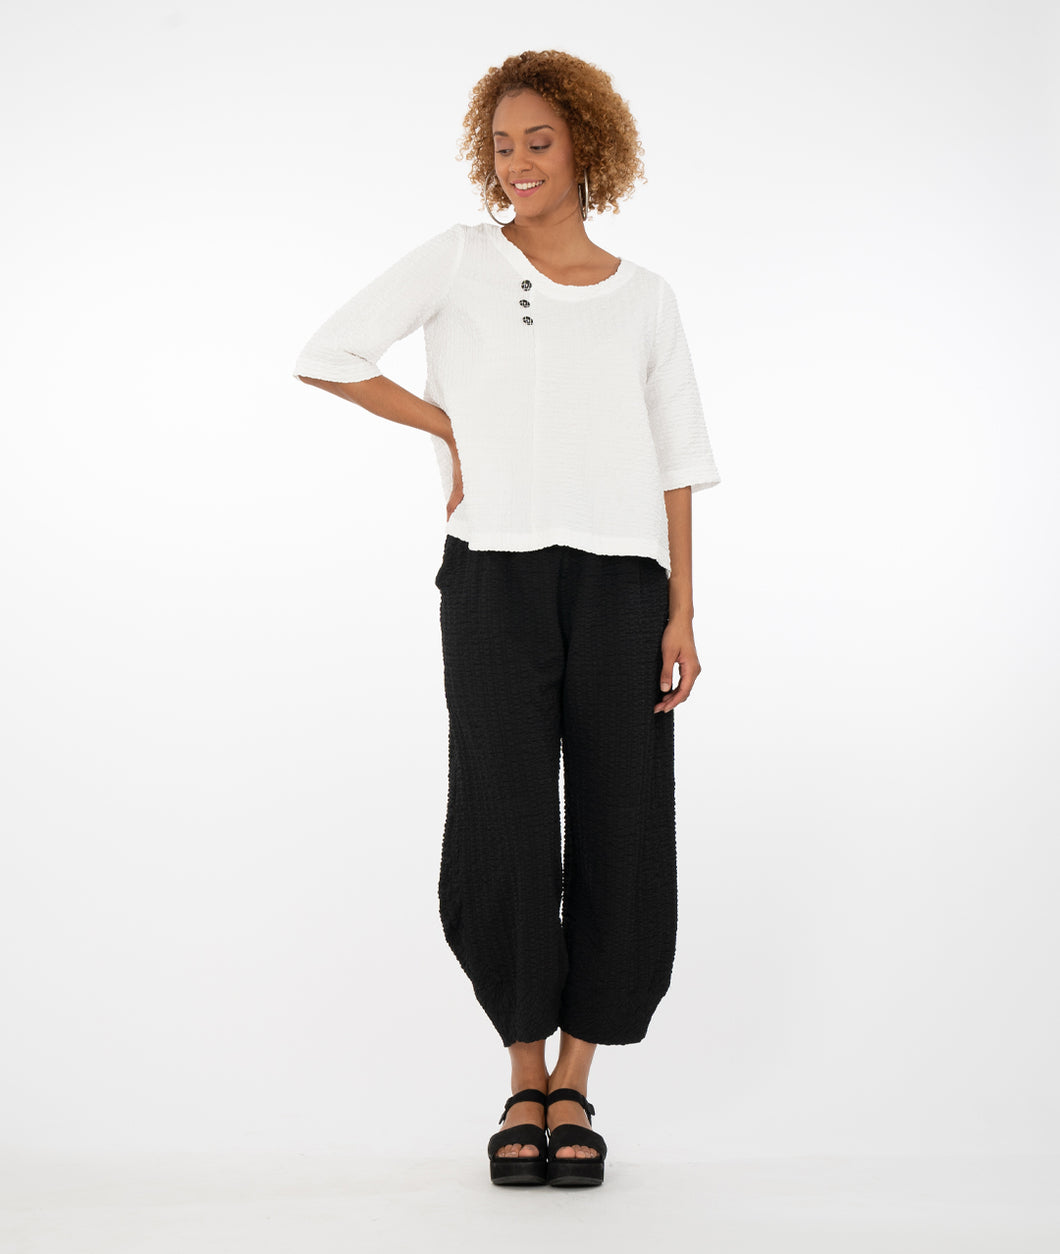 model in a white textured top with three buttons at the neckline, off centered, paired with textured black pants and standing in front of a white background